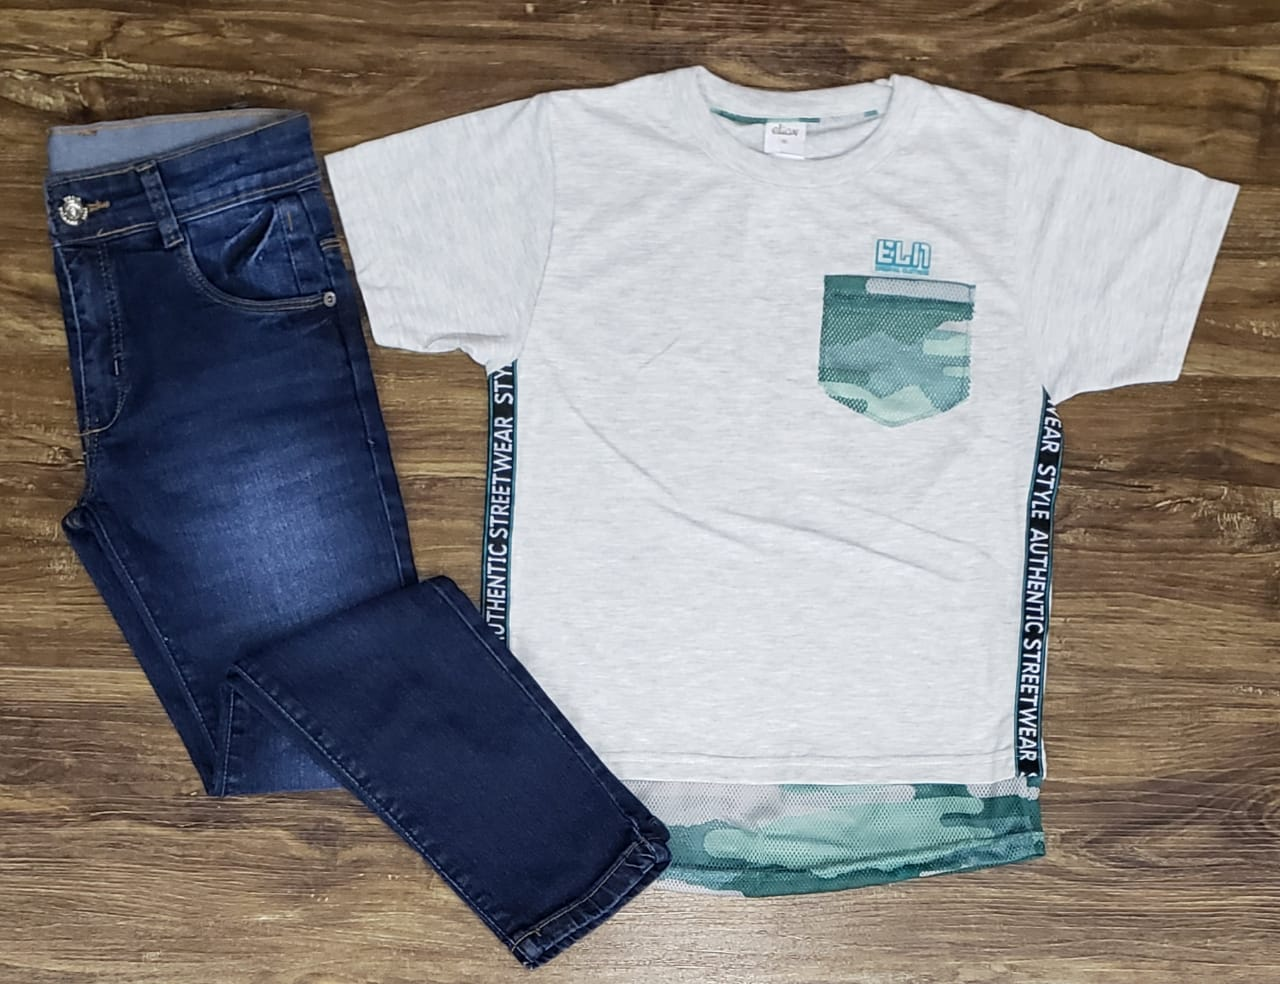 Calça Jeans com Camiseta Authentic Street